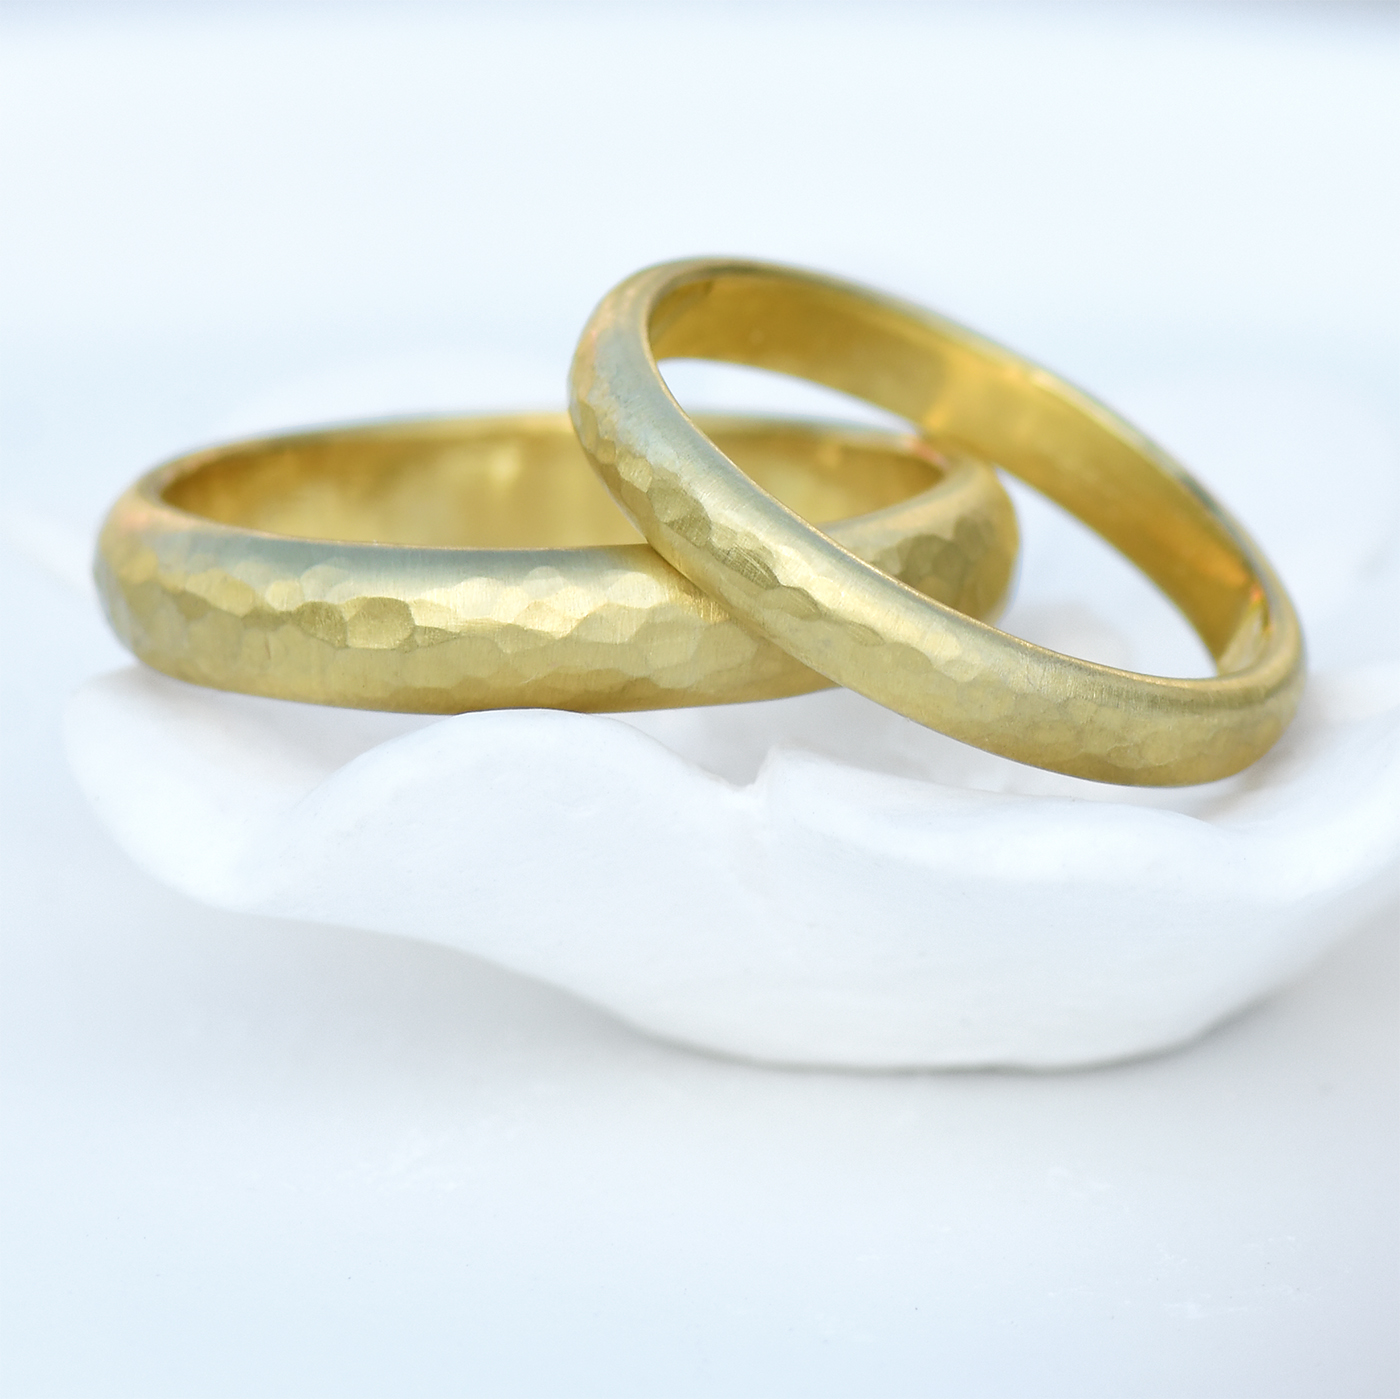 18ct hammered gold wedding rings by Lilia Nash